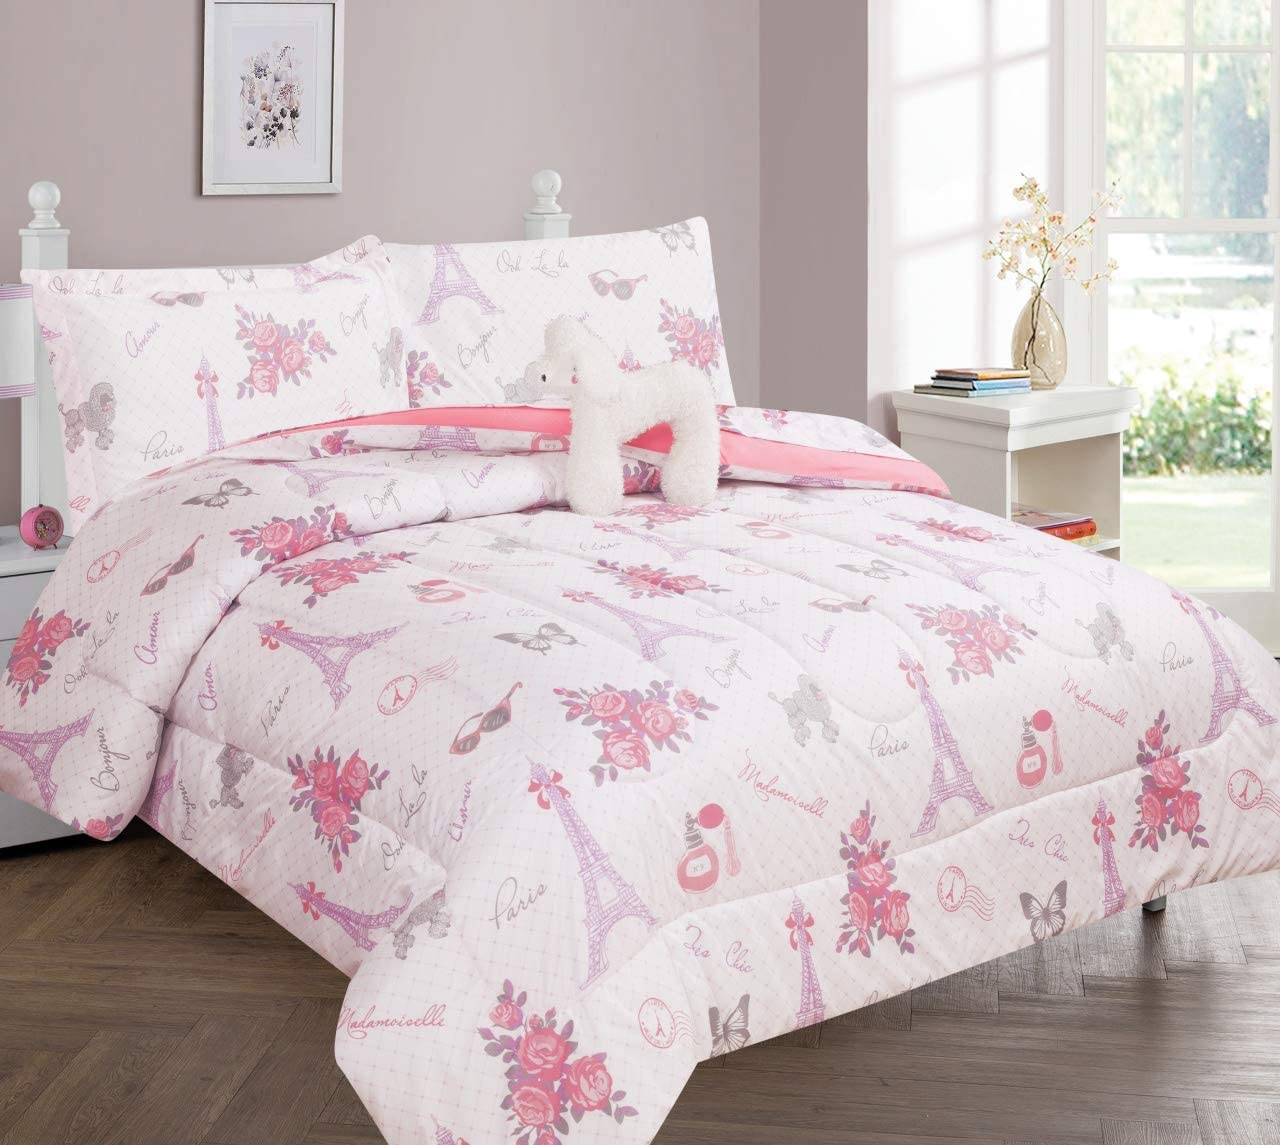 GorgeousHomeLinen 6-8PC Twin/Full Complete Bed in A Bag Comforter Bedding Set with Furry Friend and Matching Sheet Set for Kids (Paris #2, Twin)